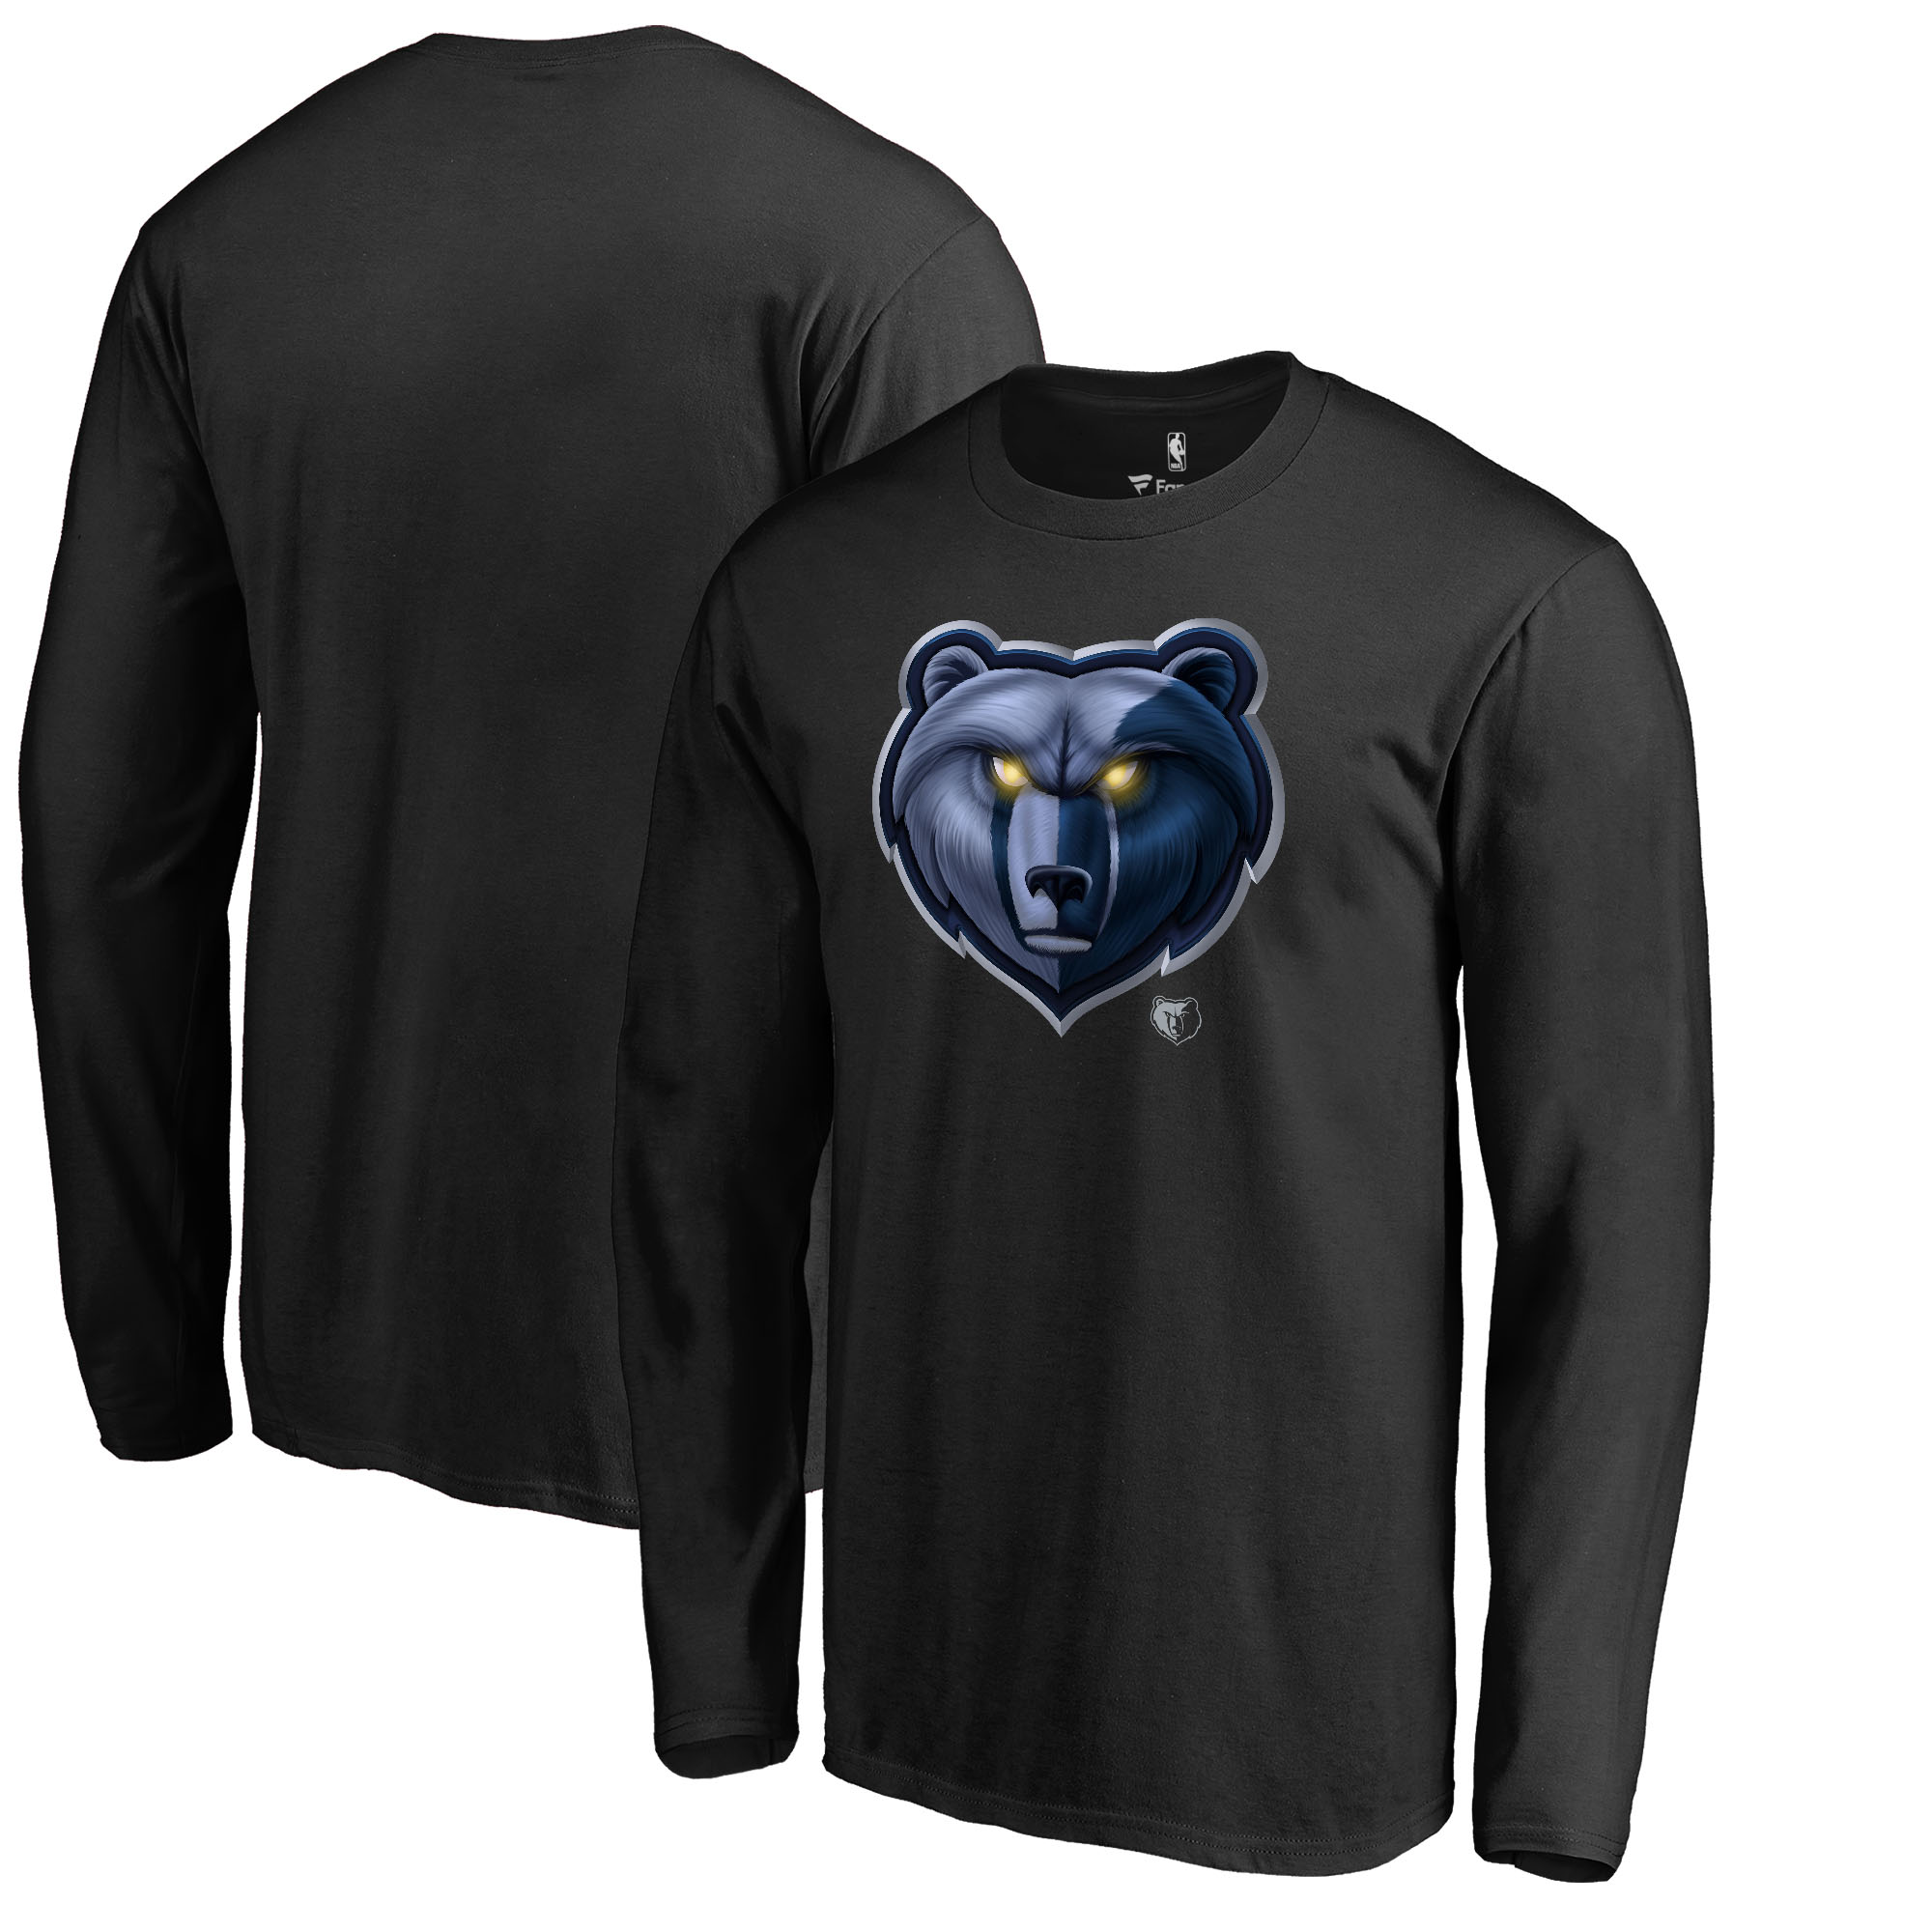 Memphis Grizzlies Fanatics Branded Midnight Mascot Long Sleeve T-Shirt - Black